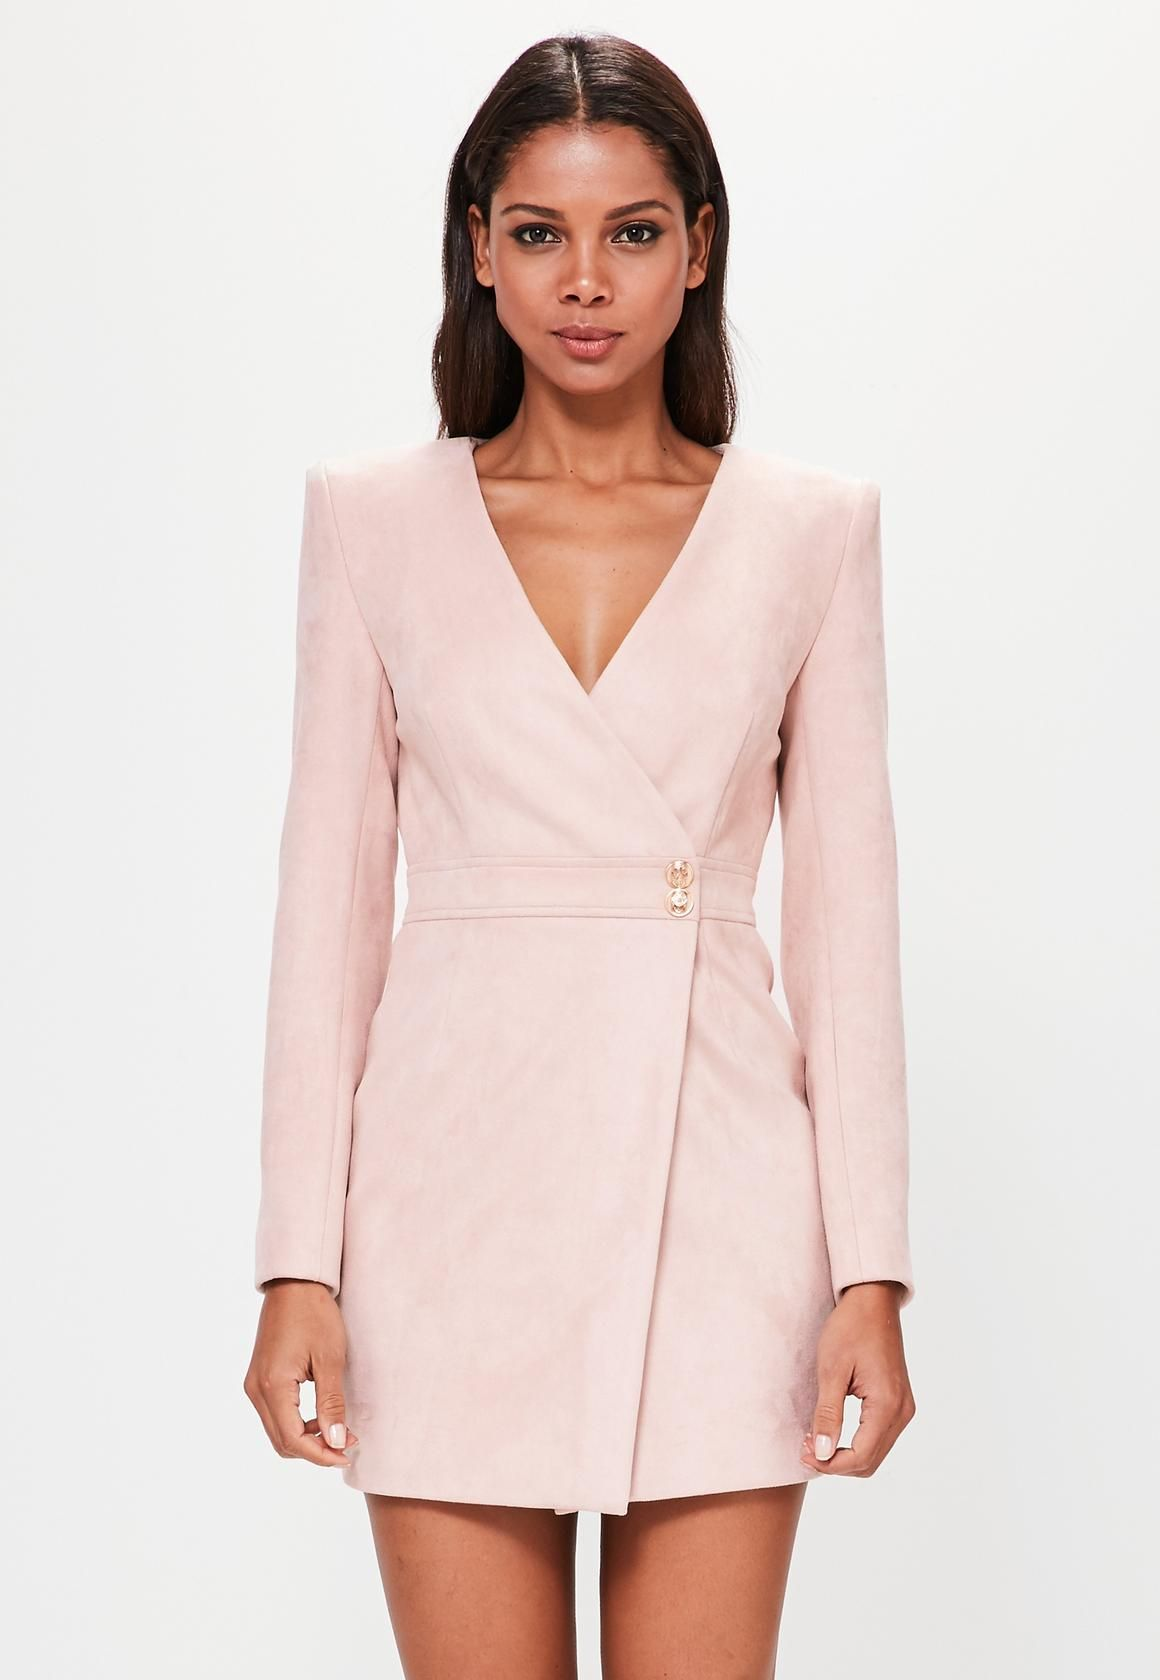 Missguided - Peace Love Nude Long Sleeve Faux Suede Wrap Dress ... f1af8a88d6d4a